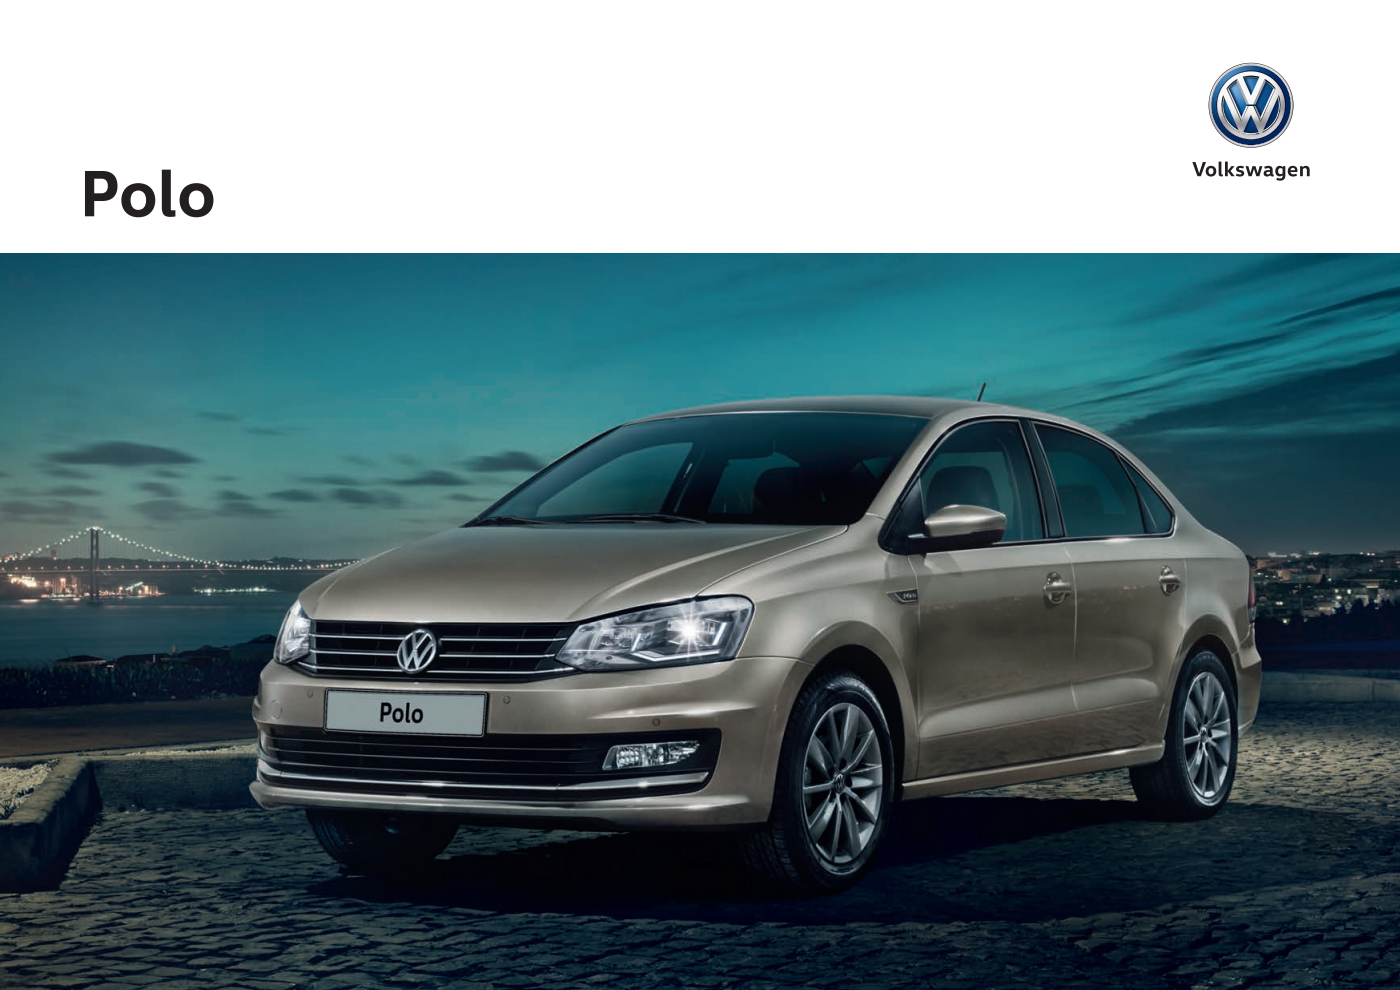 [RU]_VW_Polo_sedan_brochure_2019.jpg